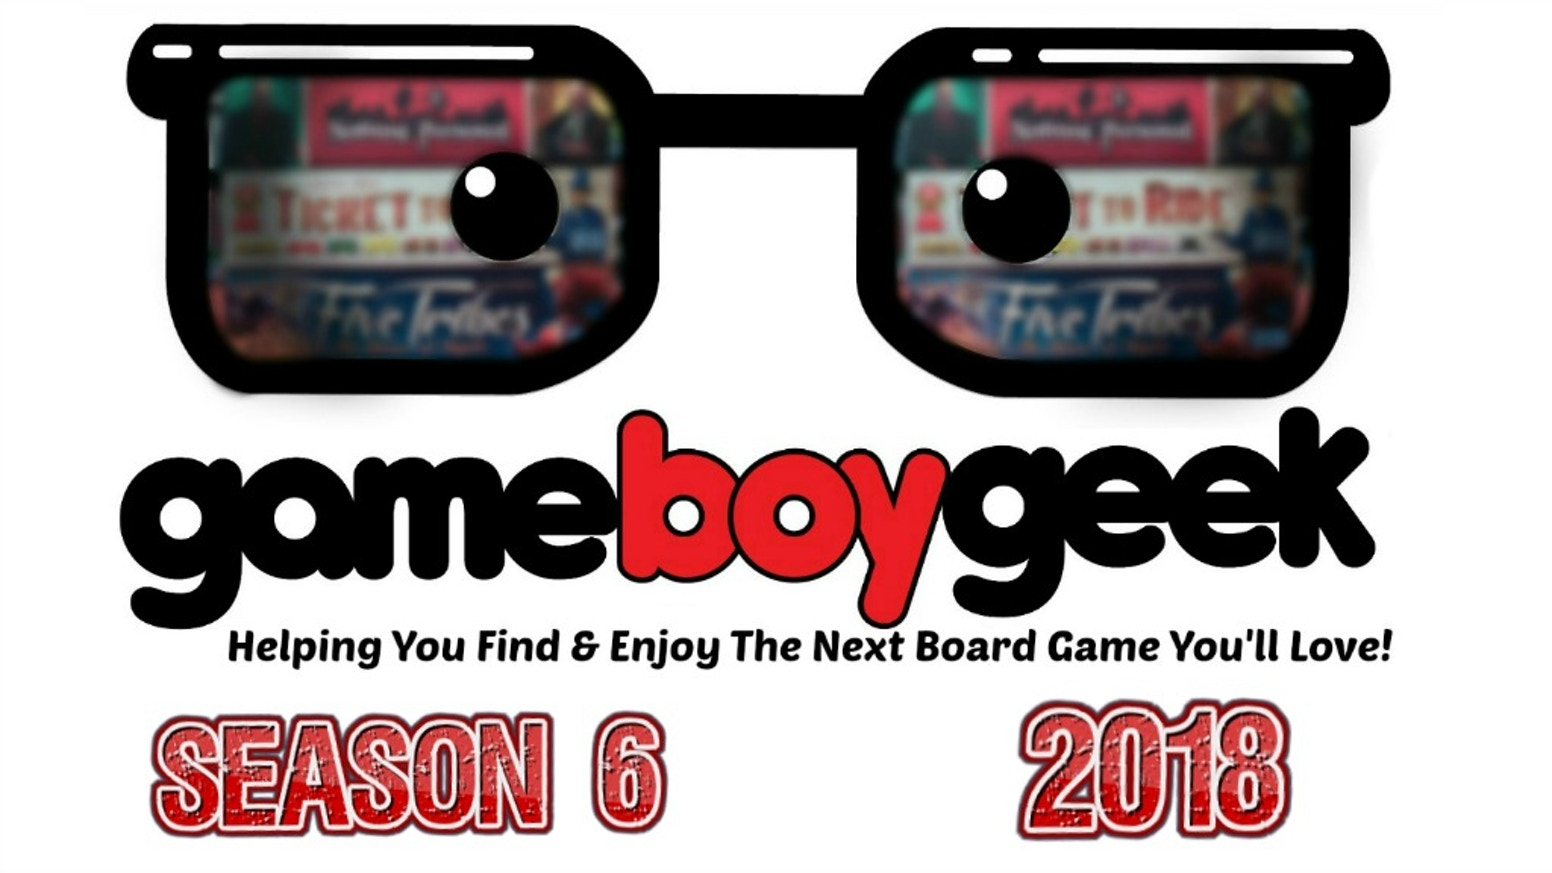 The Game Boy Geek helps you find & enjoy the next board game you'll love.